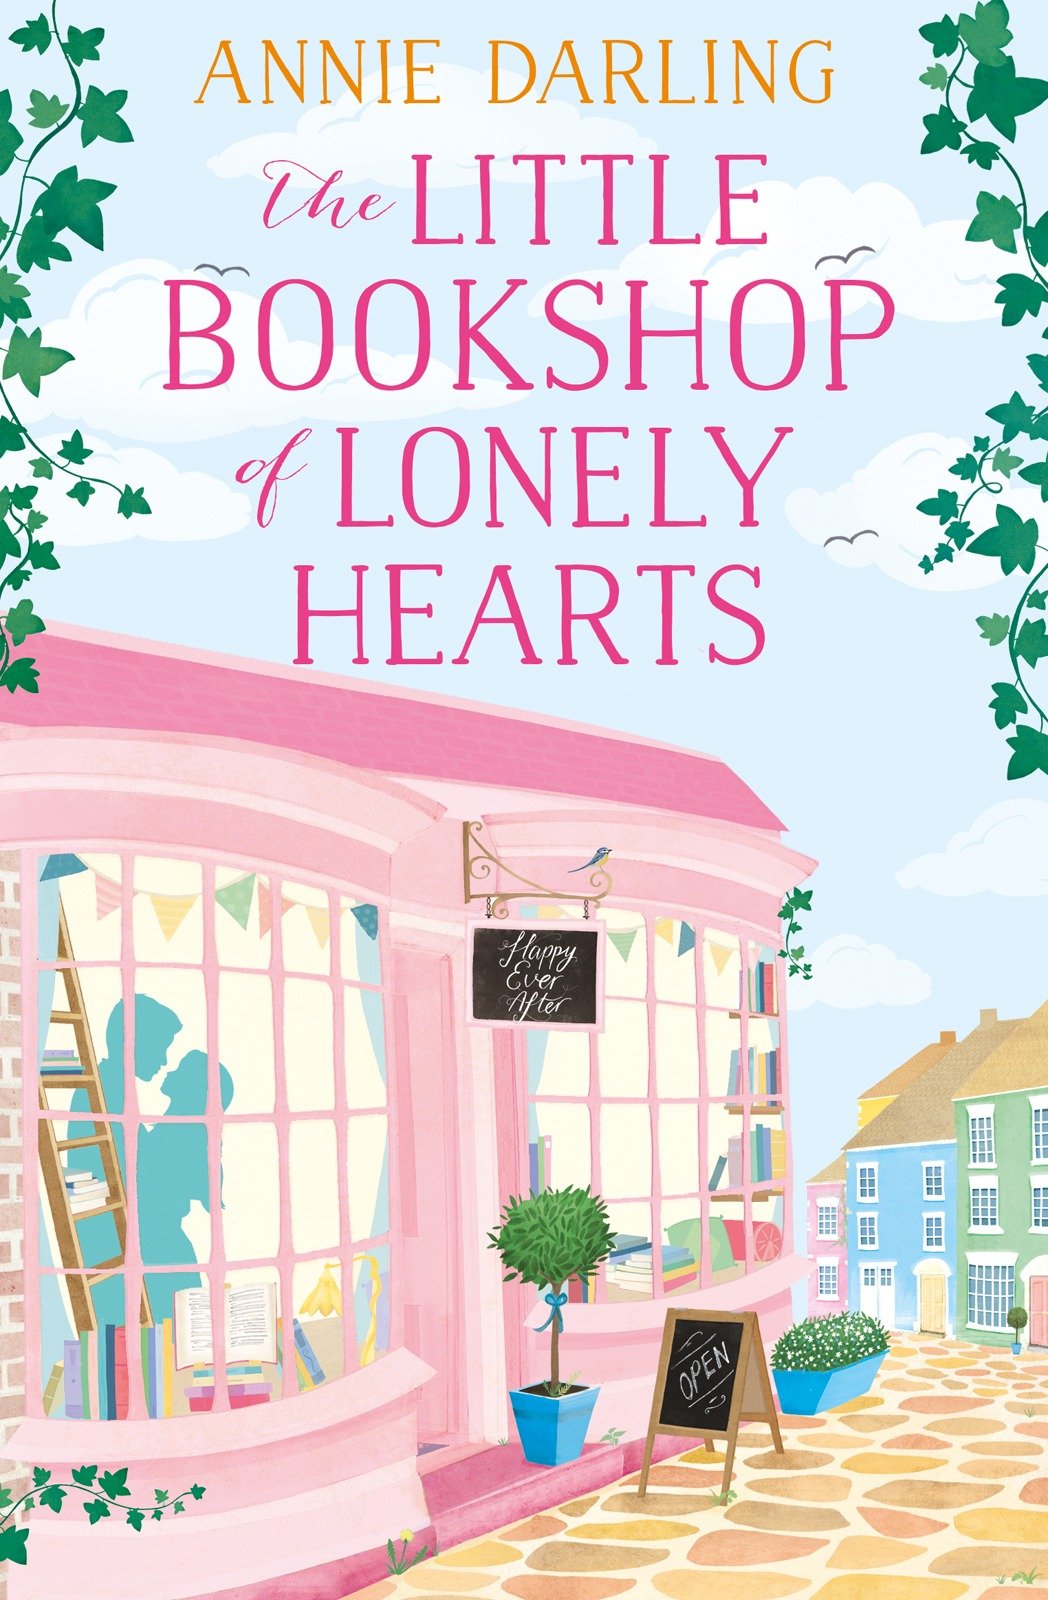 Annie Darling The Little Bookshop of Lonely Hearts: A feel-good funny romance jennifer joyce the little teashop of broken hearts